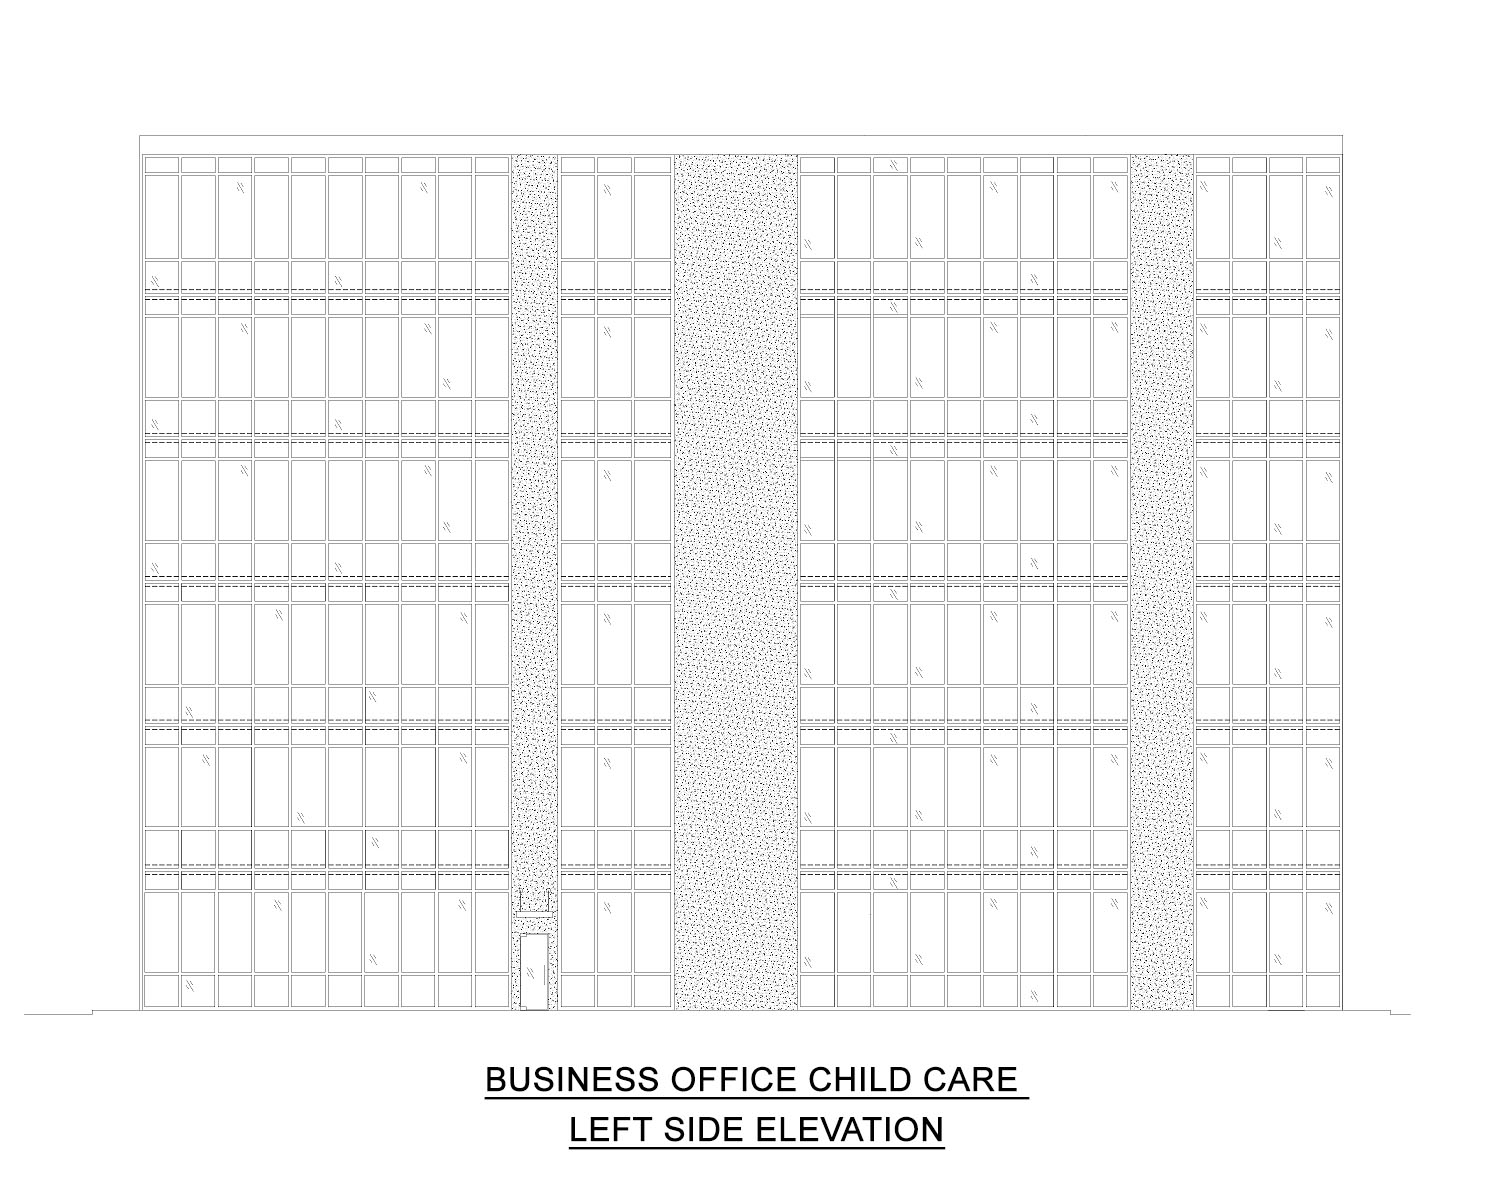 mixed use childcare floor plans for sale